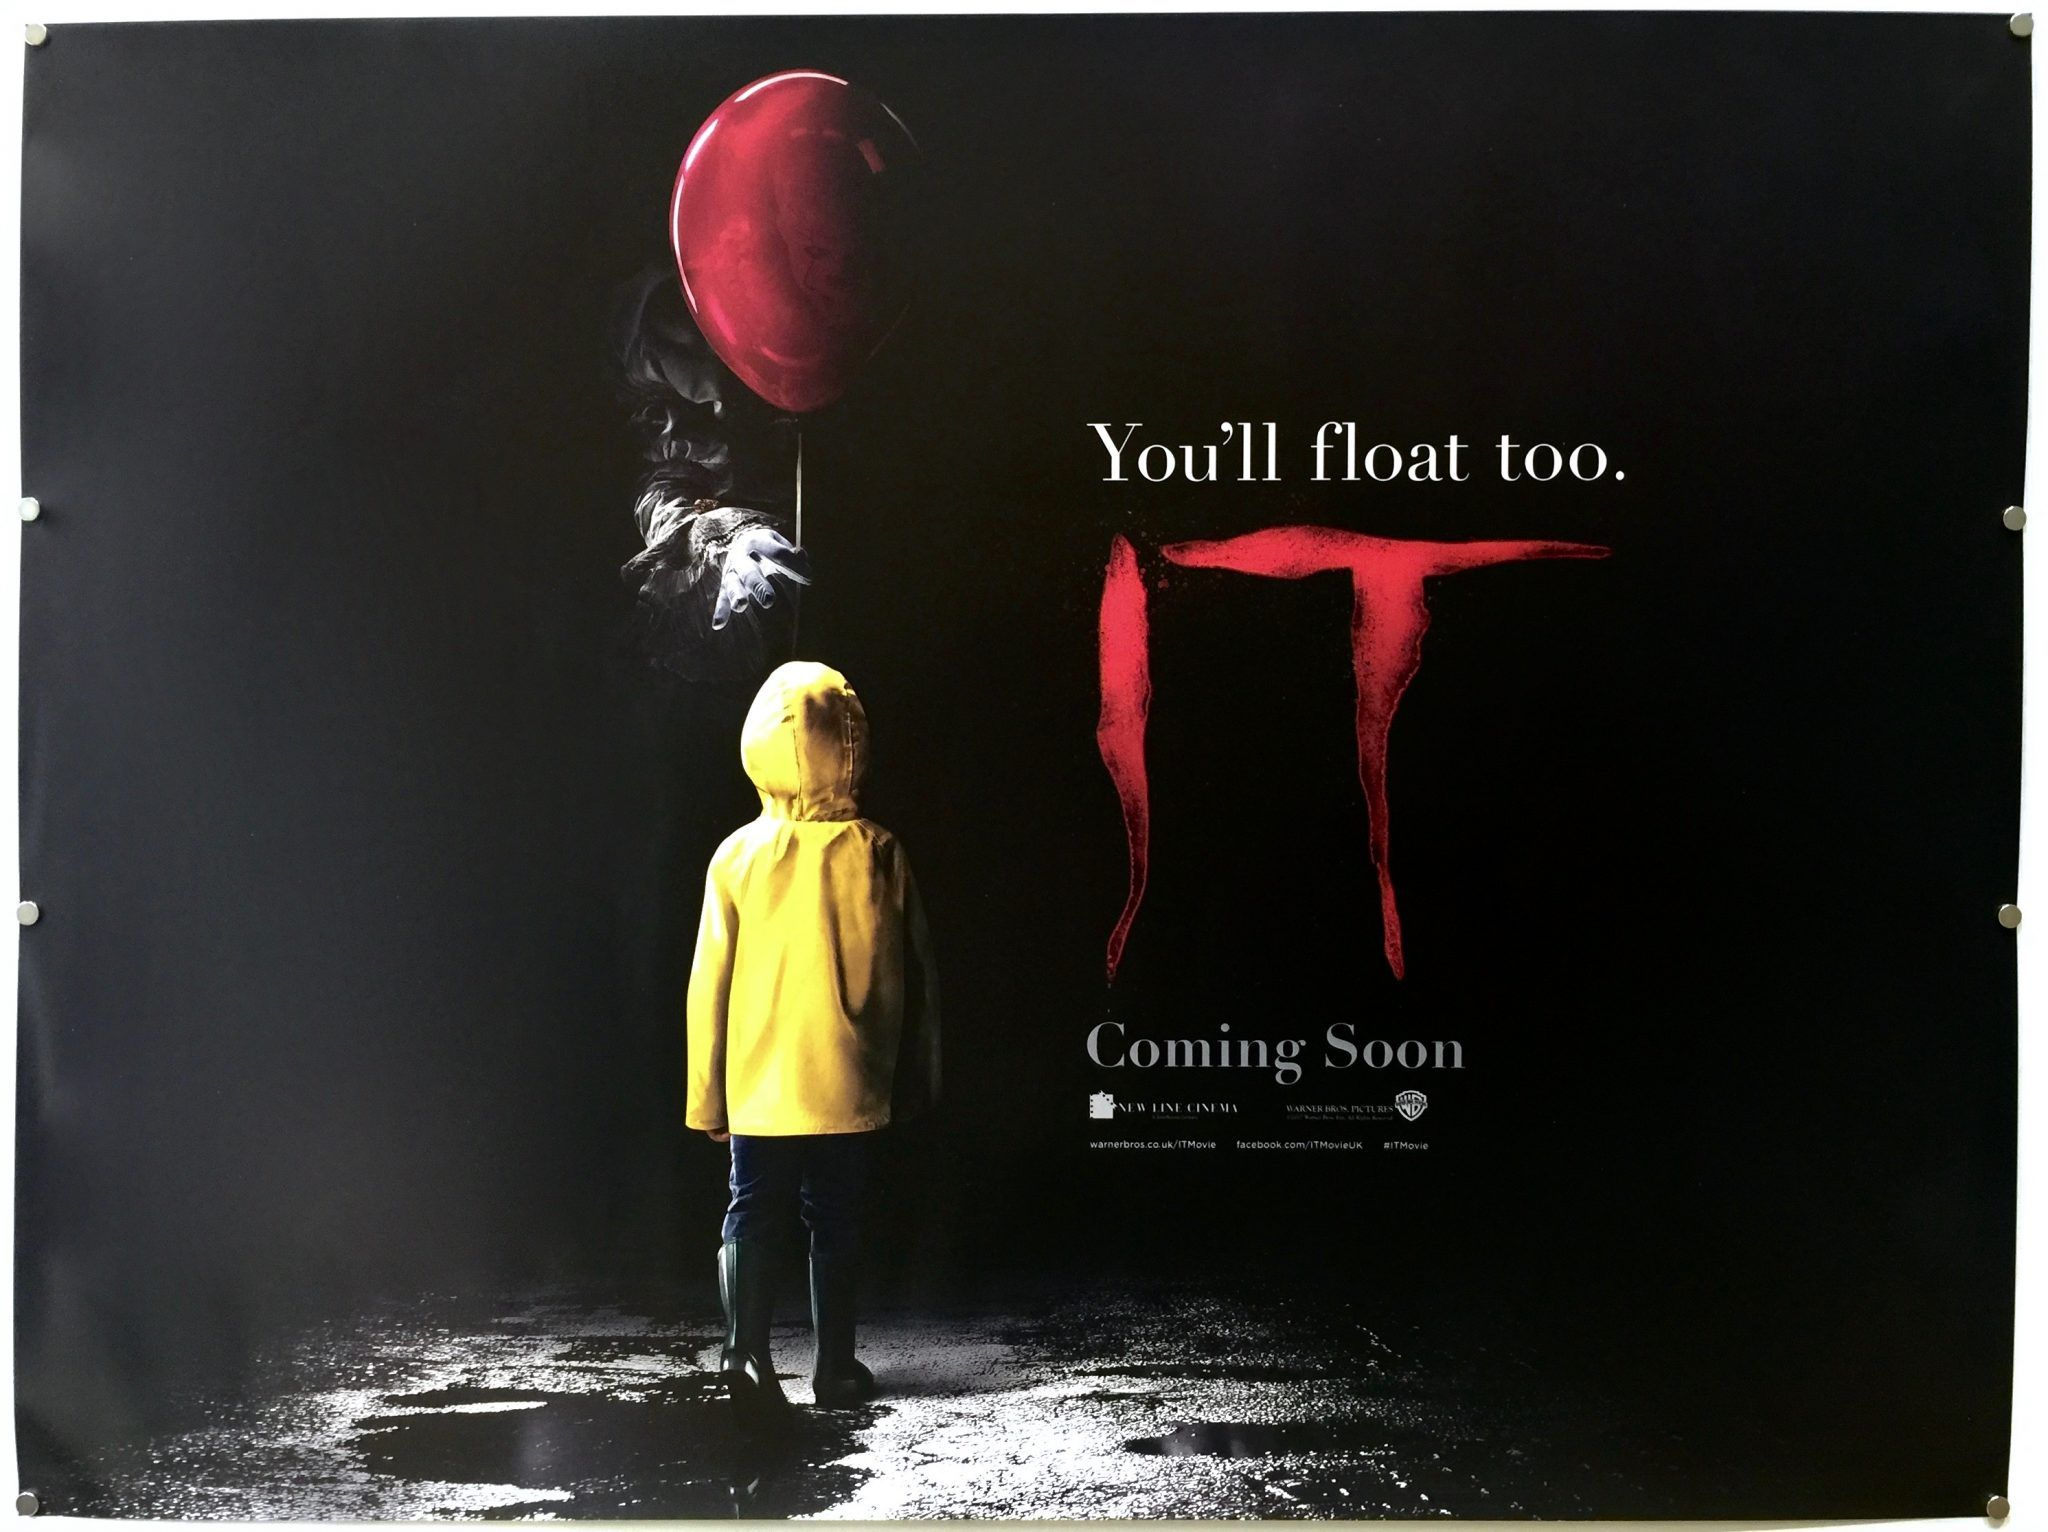 2017 Movie Posters: IT 2017 UK #movie #poster. Andrés Muschietti #horror #film